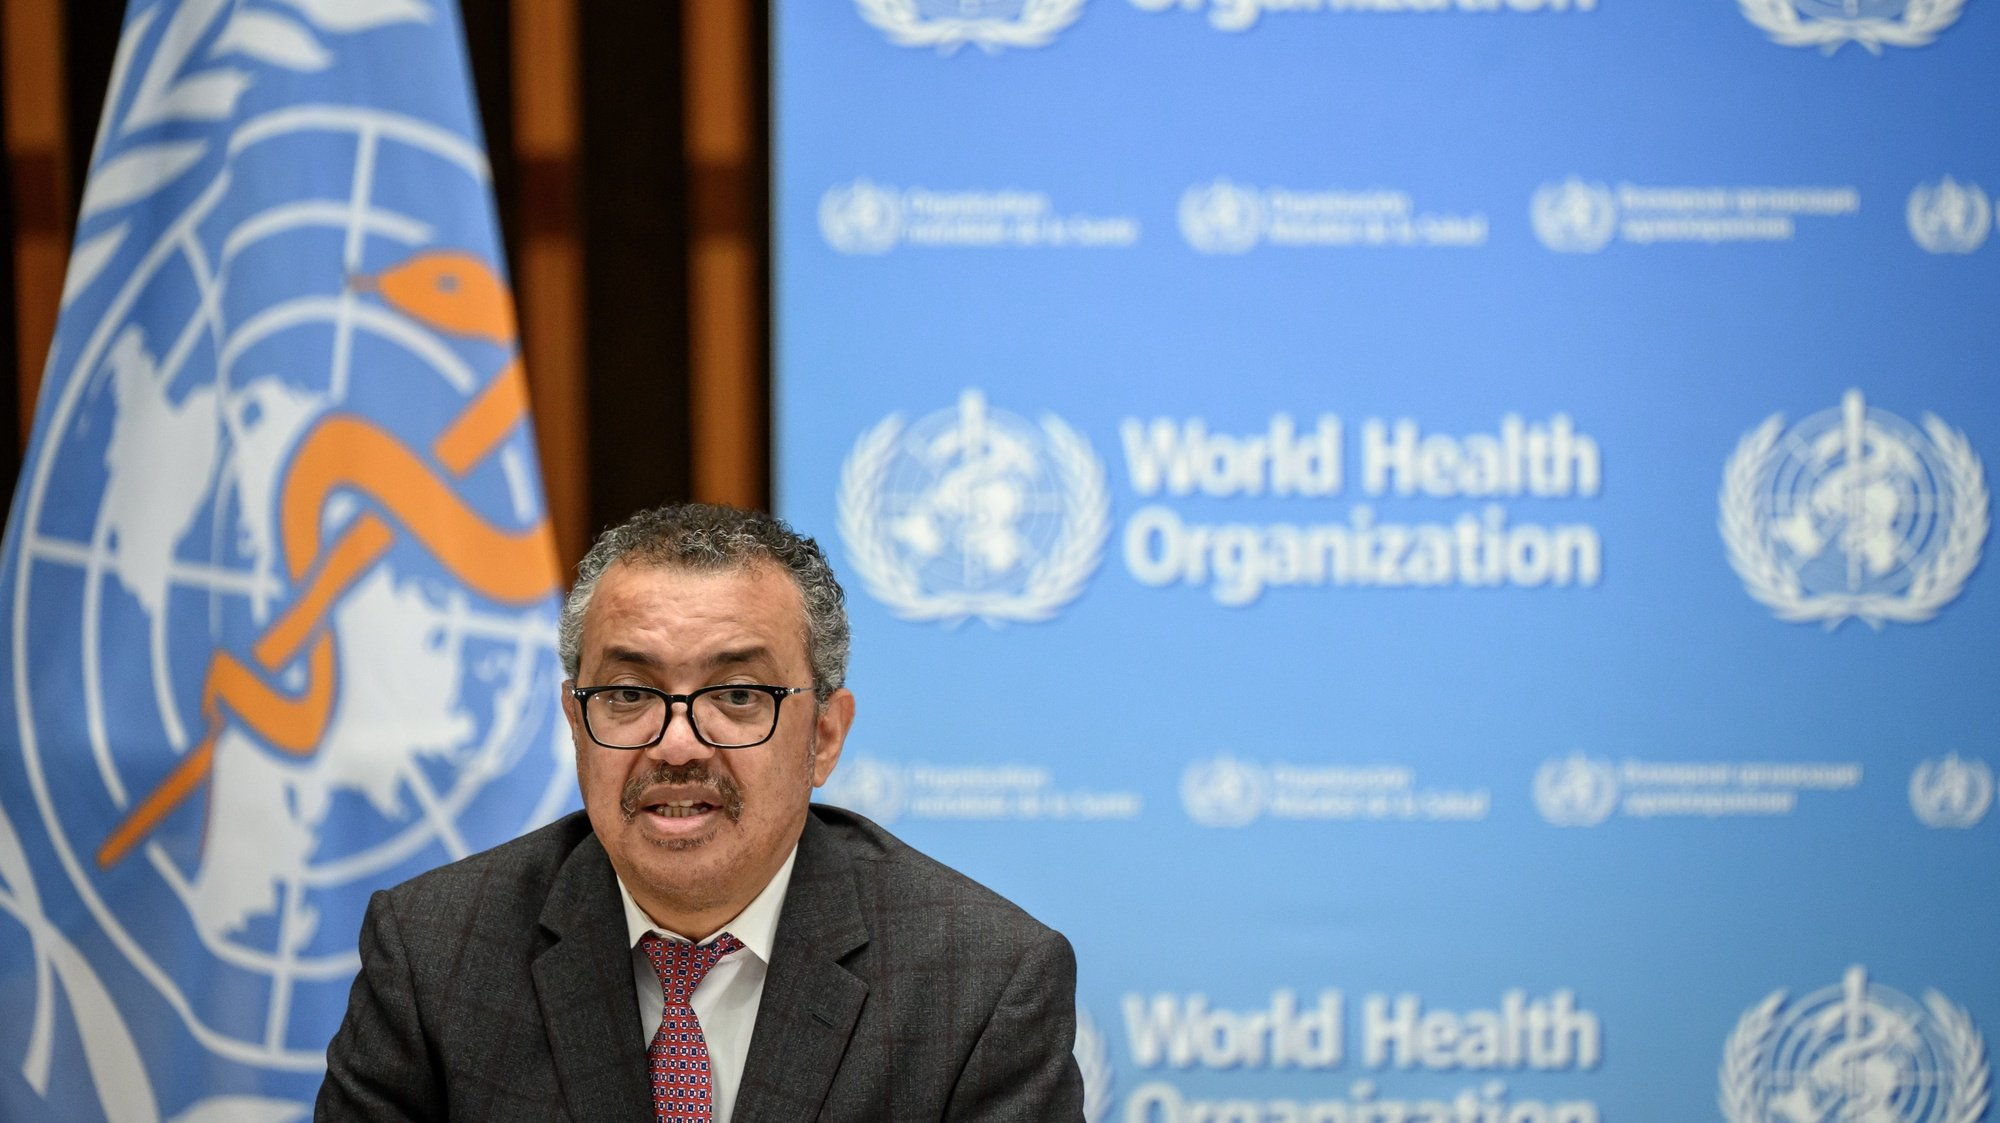 epa09529944 World Health Organization (WHO) Director-General Tedros Adhanom Ghebreyesus delivers a speech during the launch of a multiyear partnership with Qatar on making the FIFA Football World Cup 2022 and mega sporting events healthy and safe, at the WHO headquarters in Geneva, Switzerland,  18 October 2021.  EPA/FABRICE COFFRINI / POOL